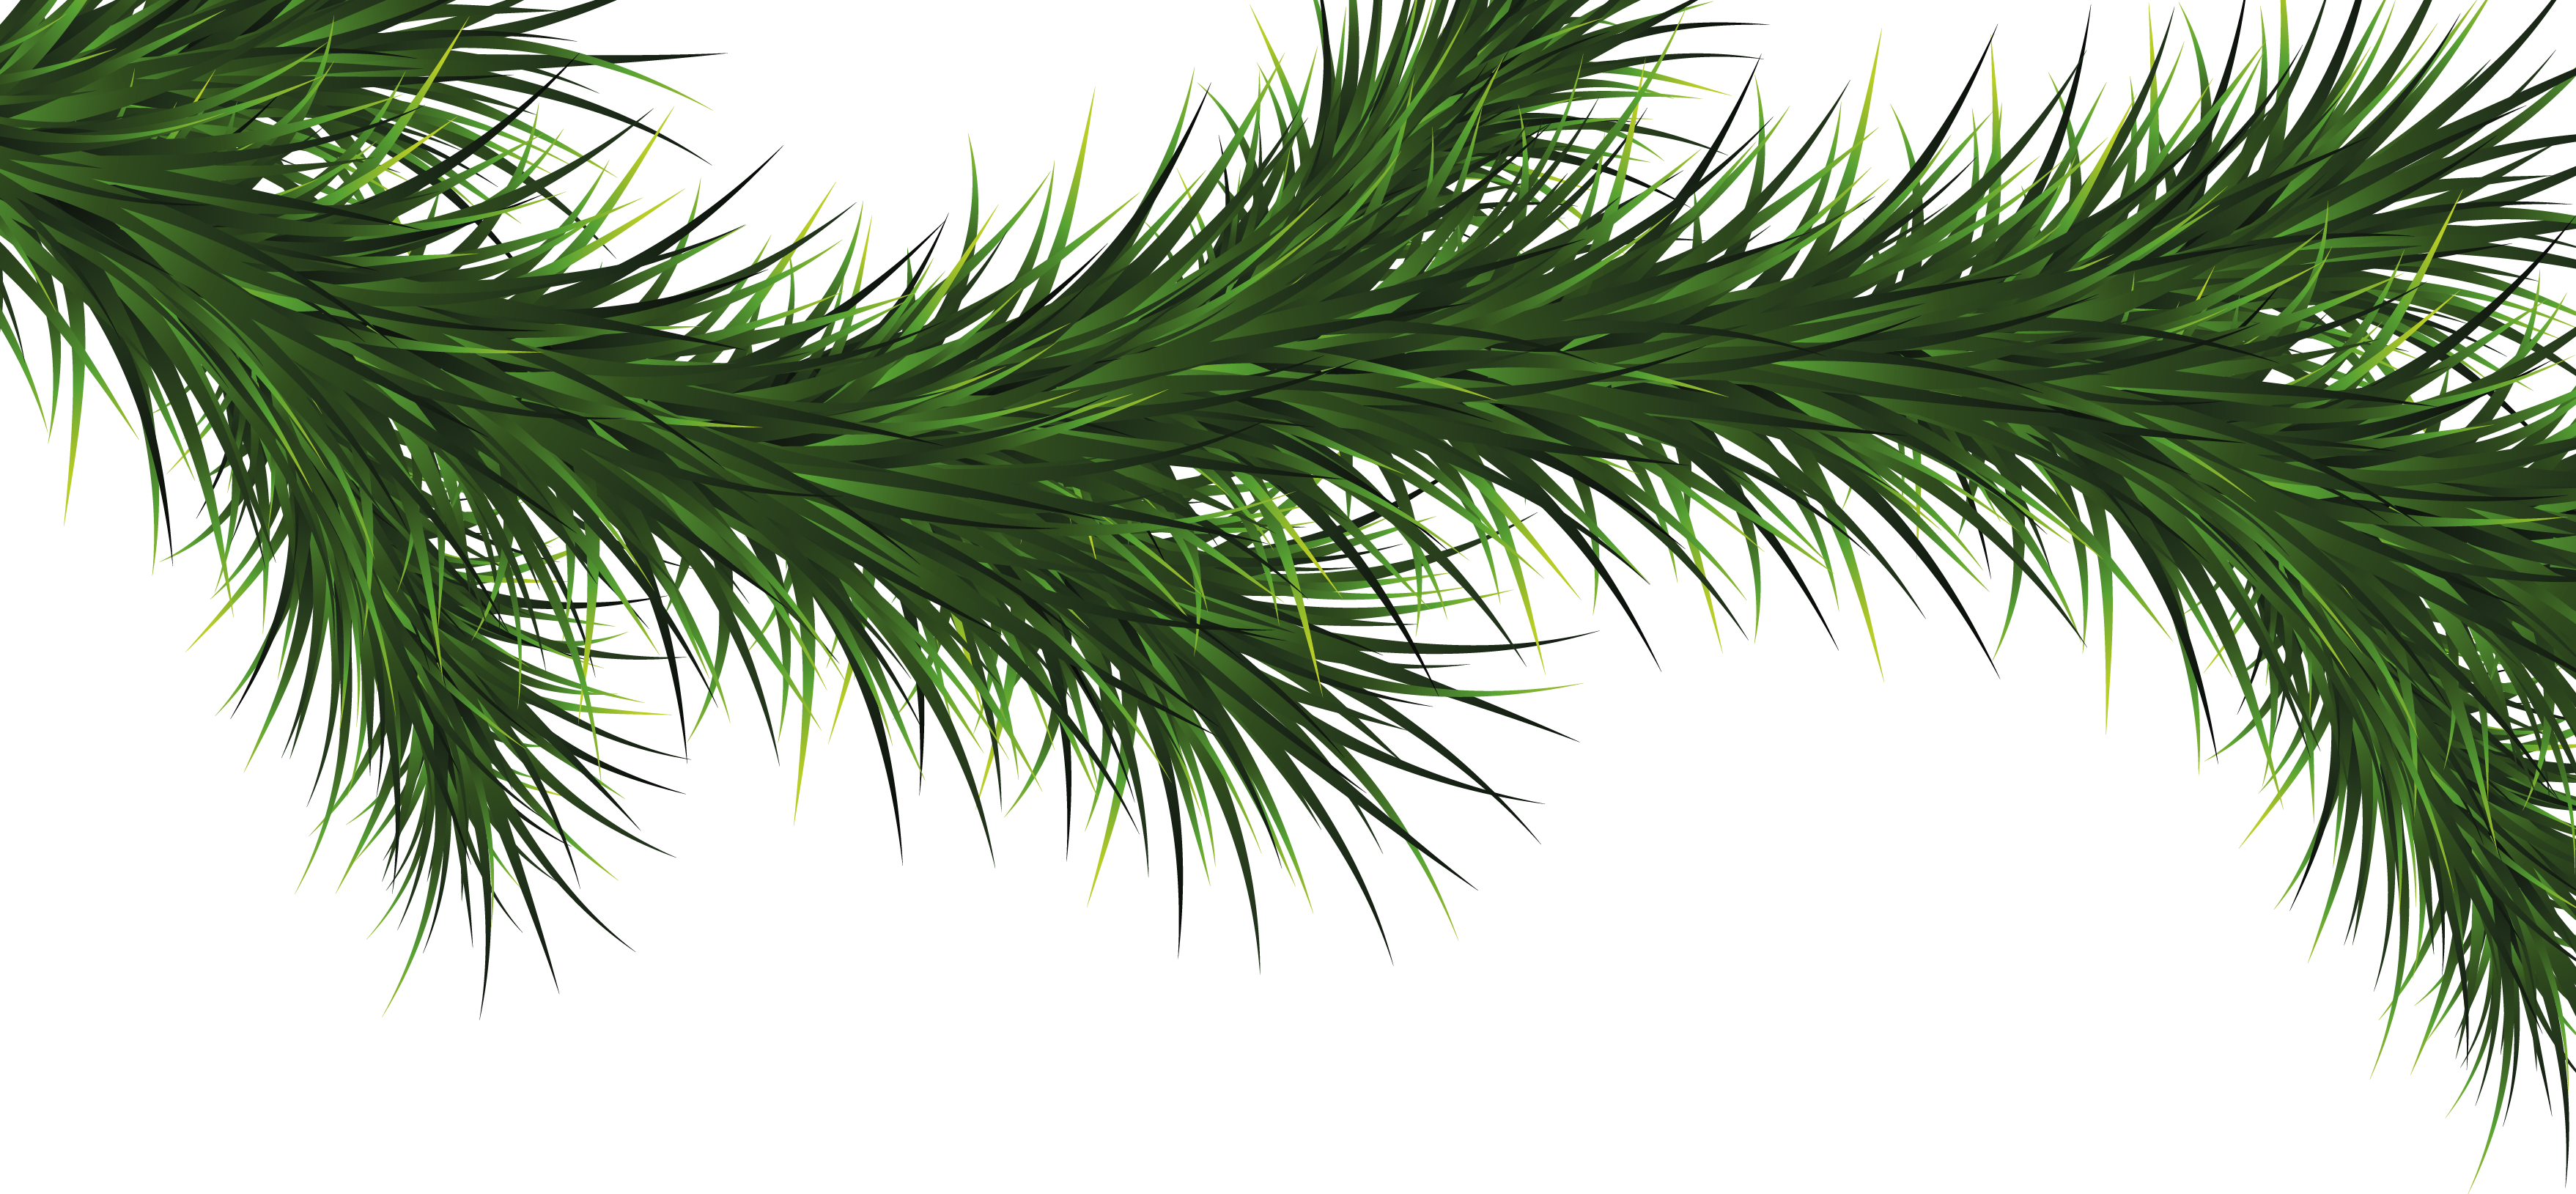 Pine tree branch png. Fir images free download